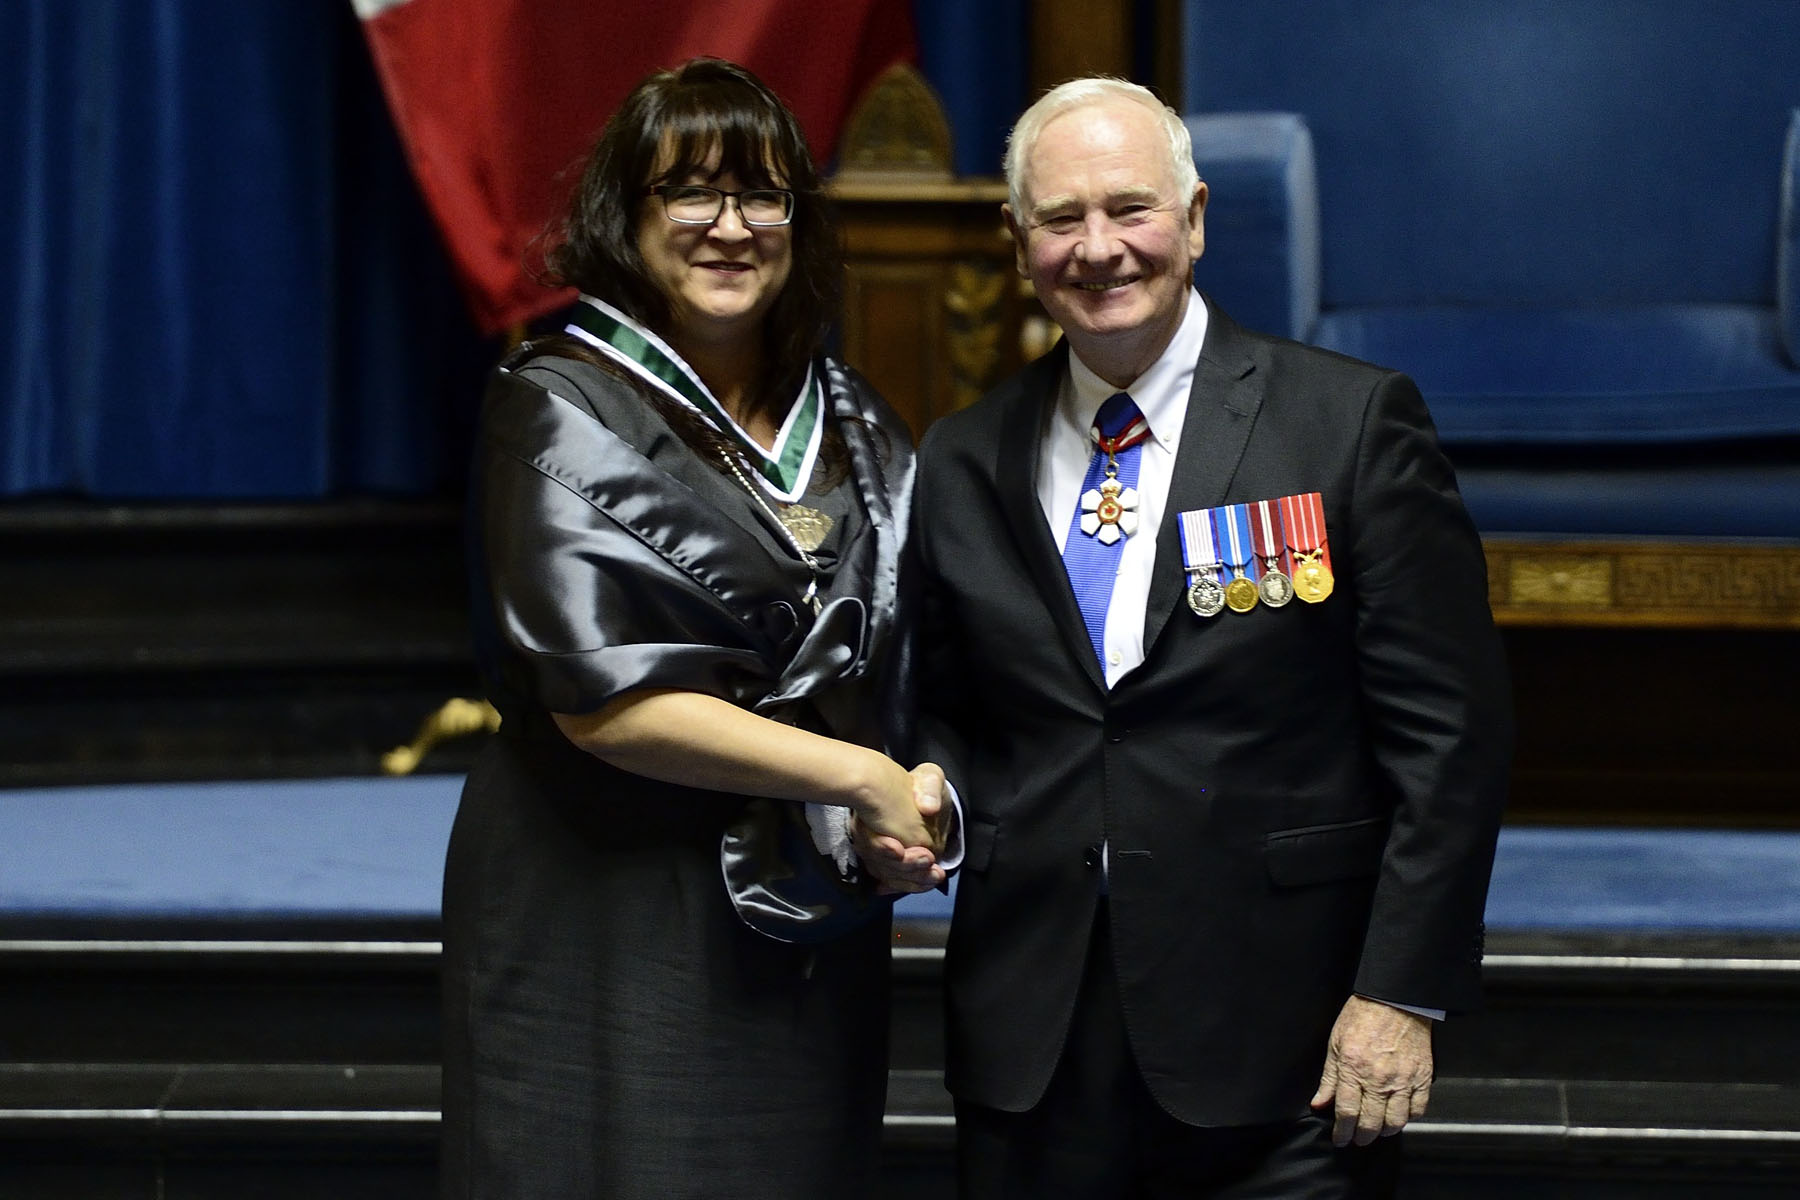 Diane Redsky,of Winnipeg, Manitoba, is a visionary thinker and community leader who has dedicated her life to advancing gender equality, particularly for Indigenous women.